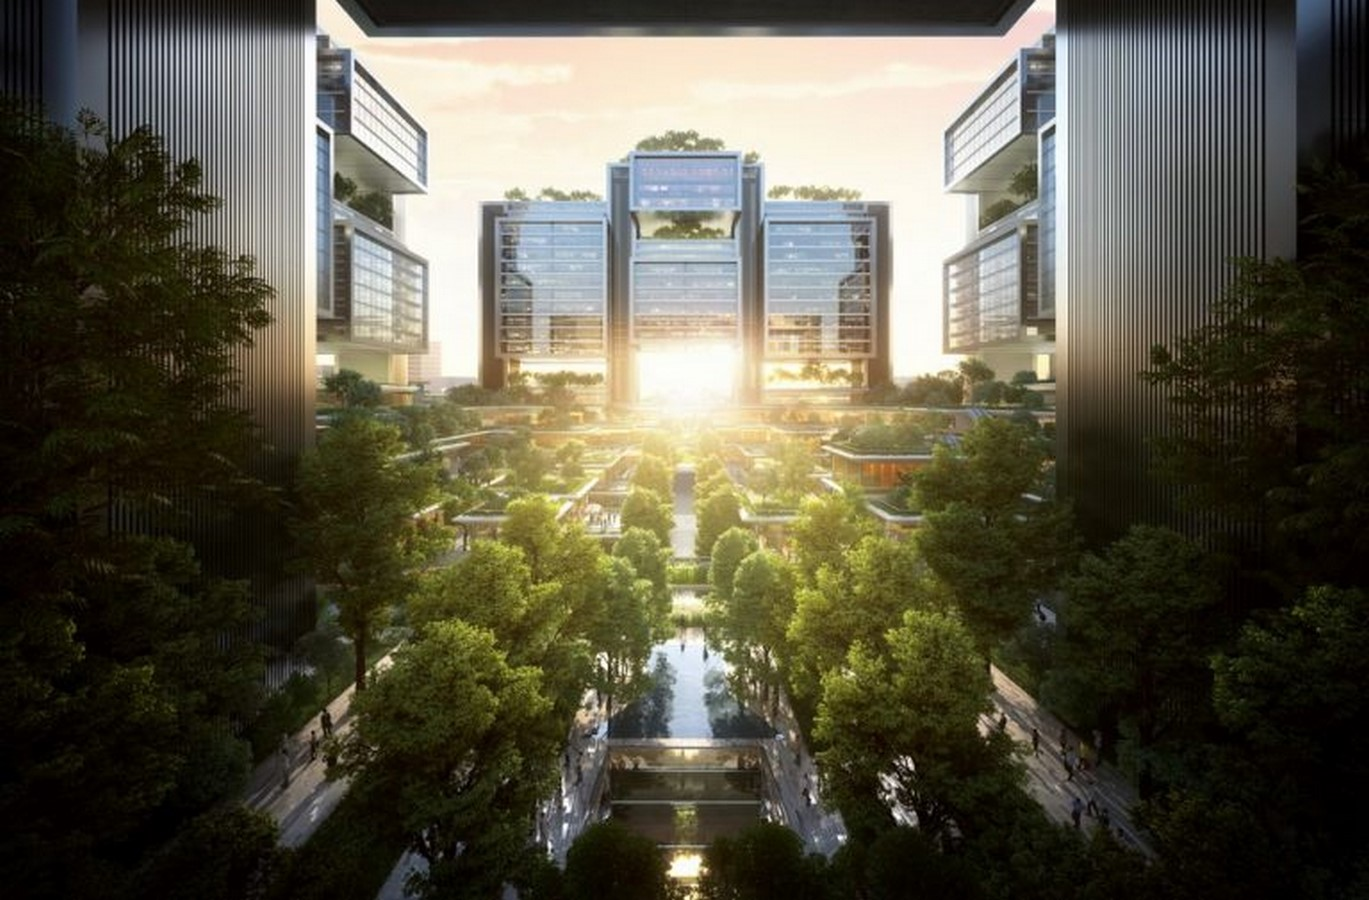 Master Plan for forests neighborhoods in Bangkok unveiled by Foster + Partners Sheet1